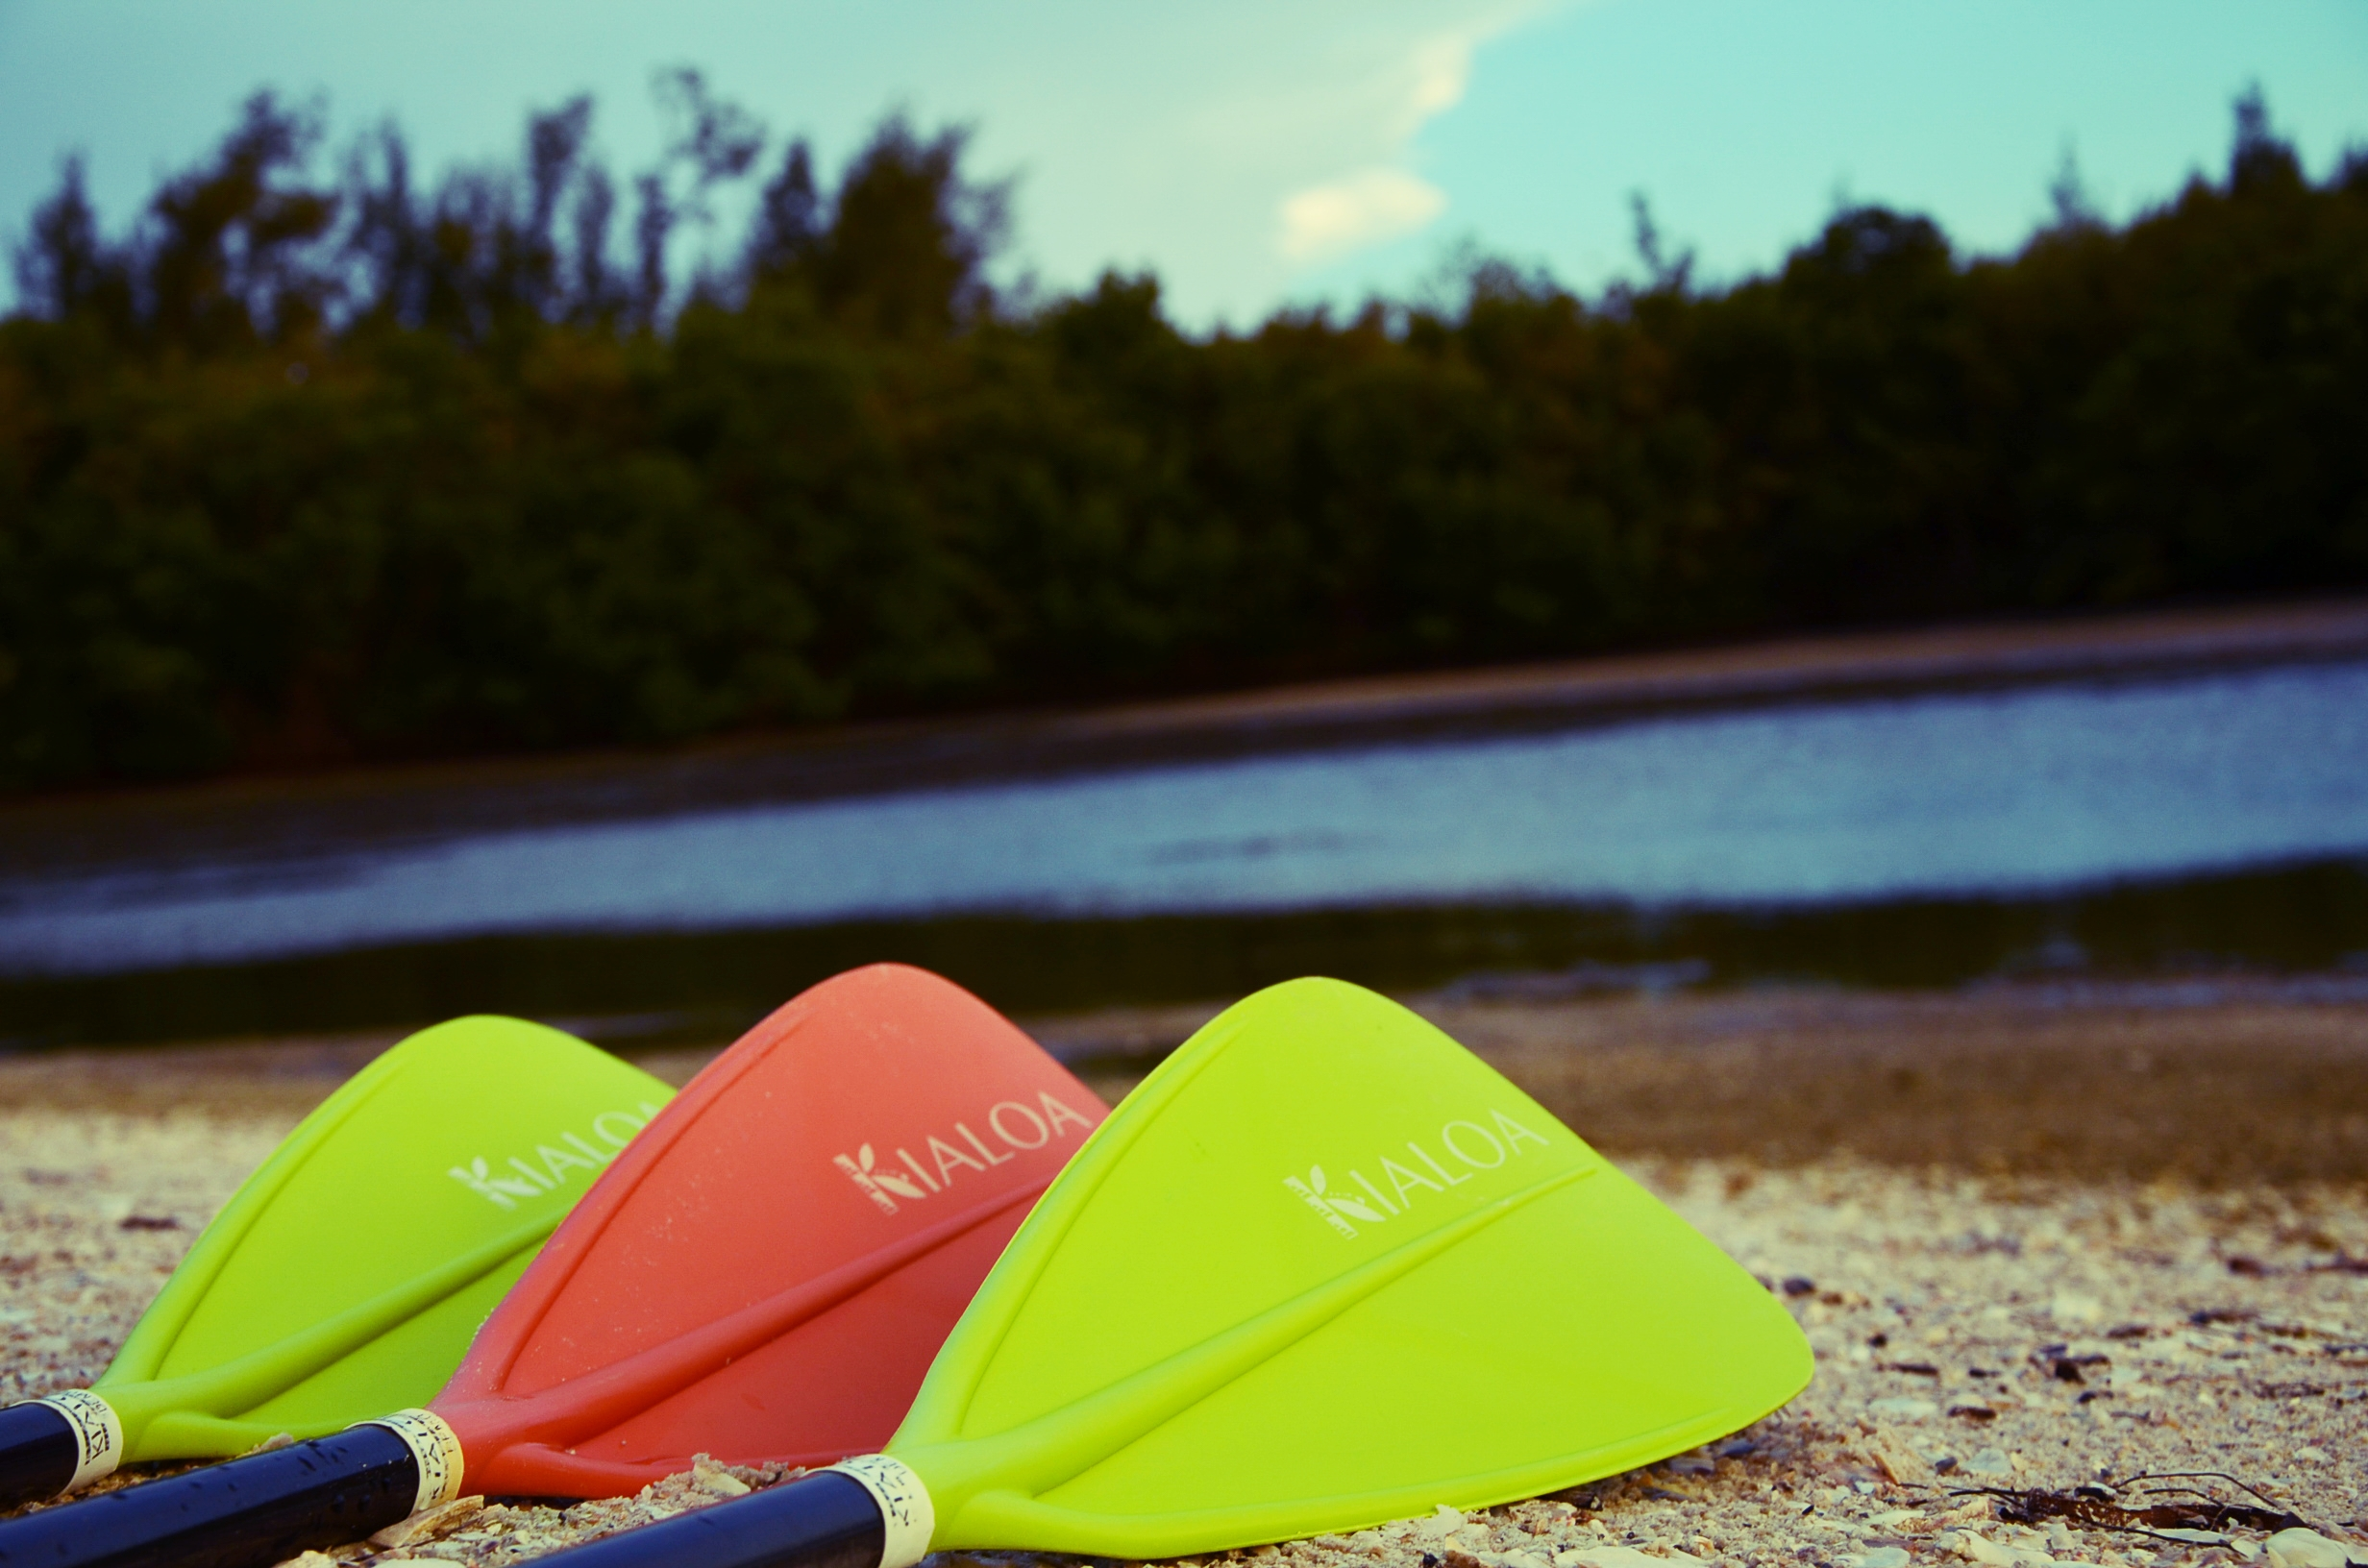 They type of paddle you choose will help shape your paddling experience.